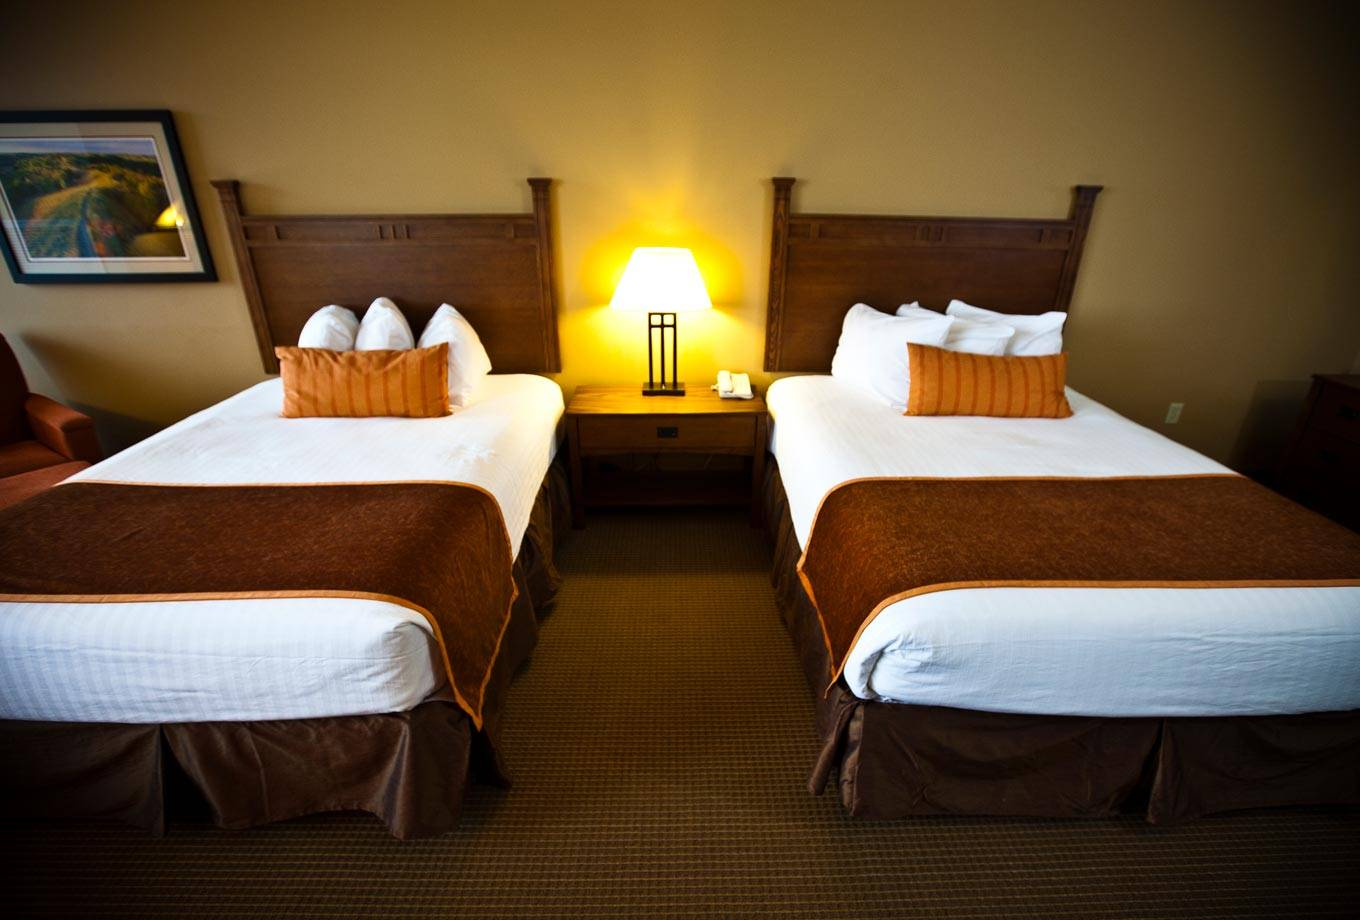 Two queen-size beds are featured in guest rooms at Honey Creek Resort's the Lodge on Rathbun Lake